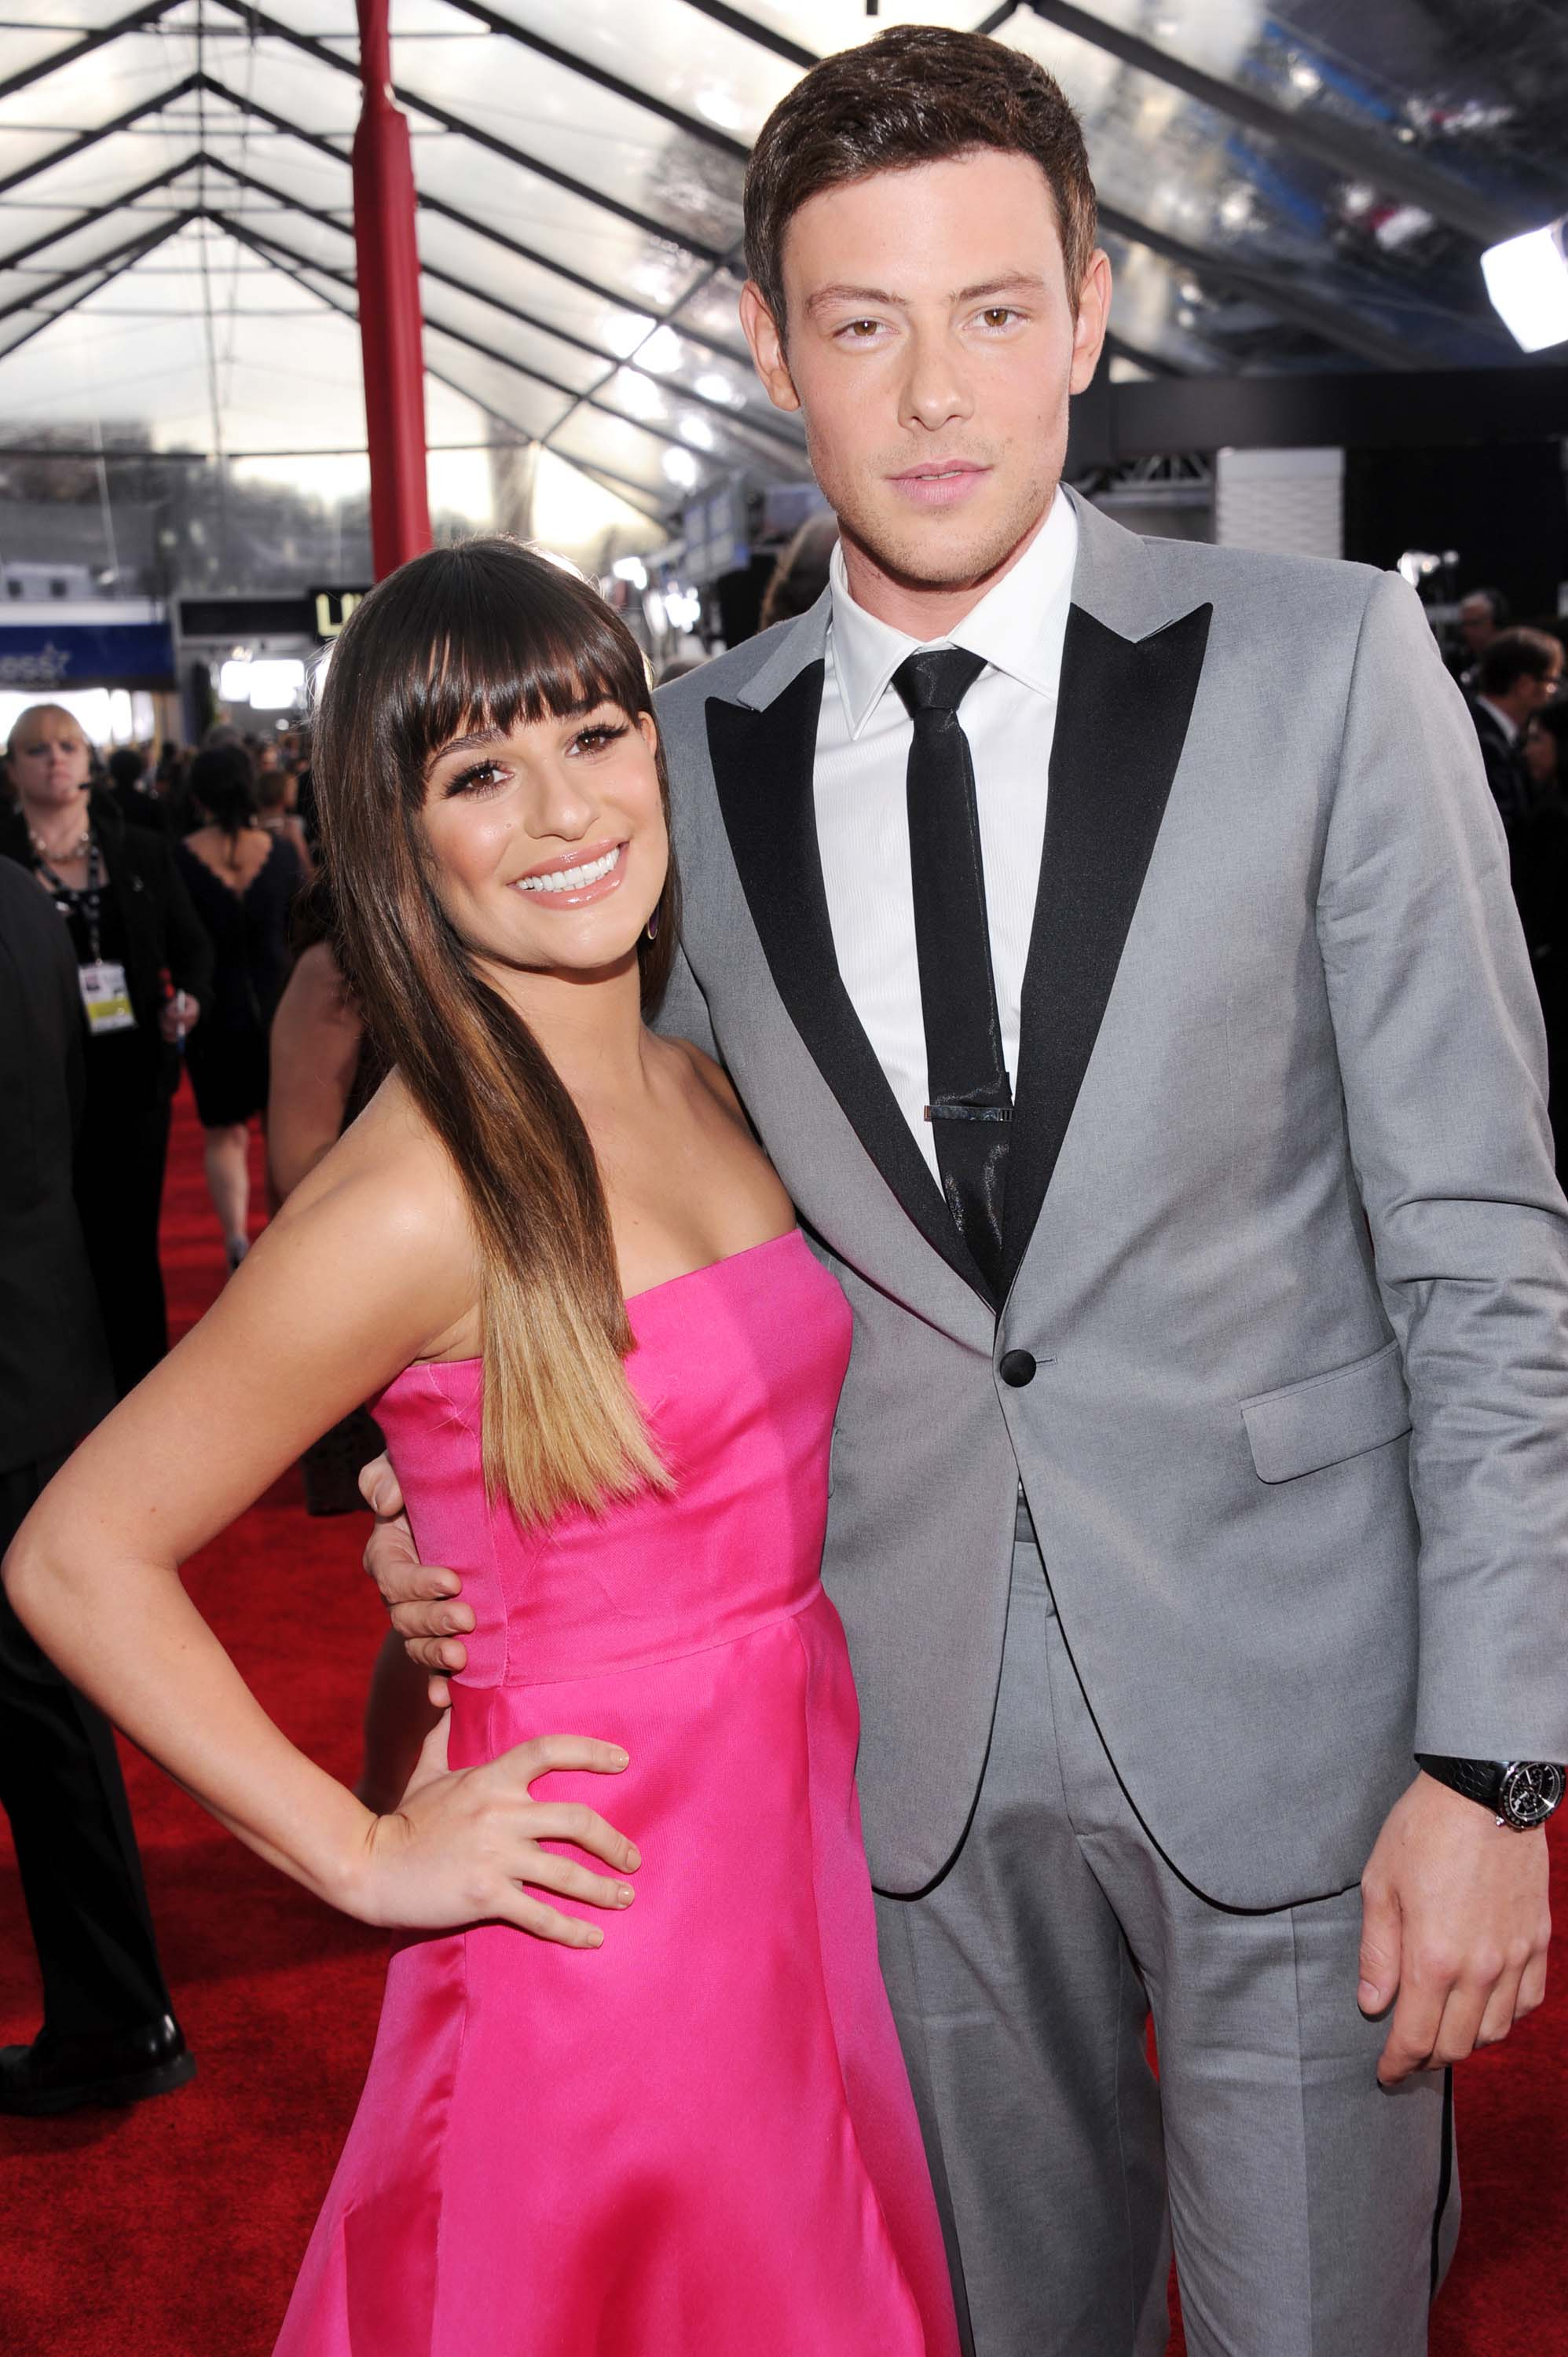 Lea Michele and Cory Monteith